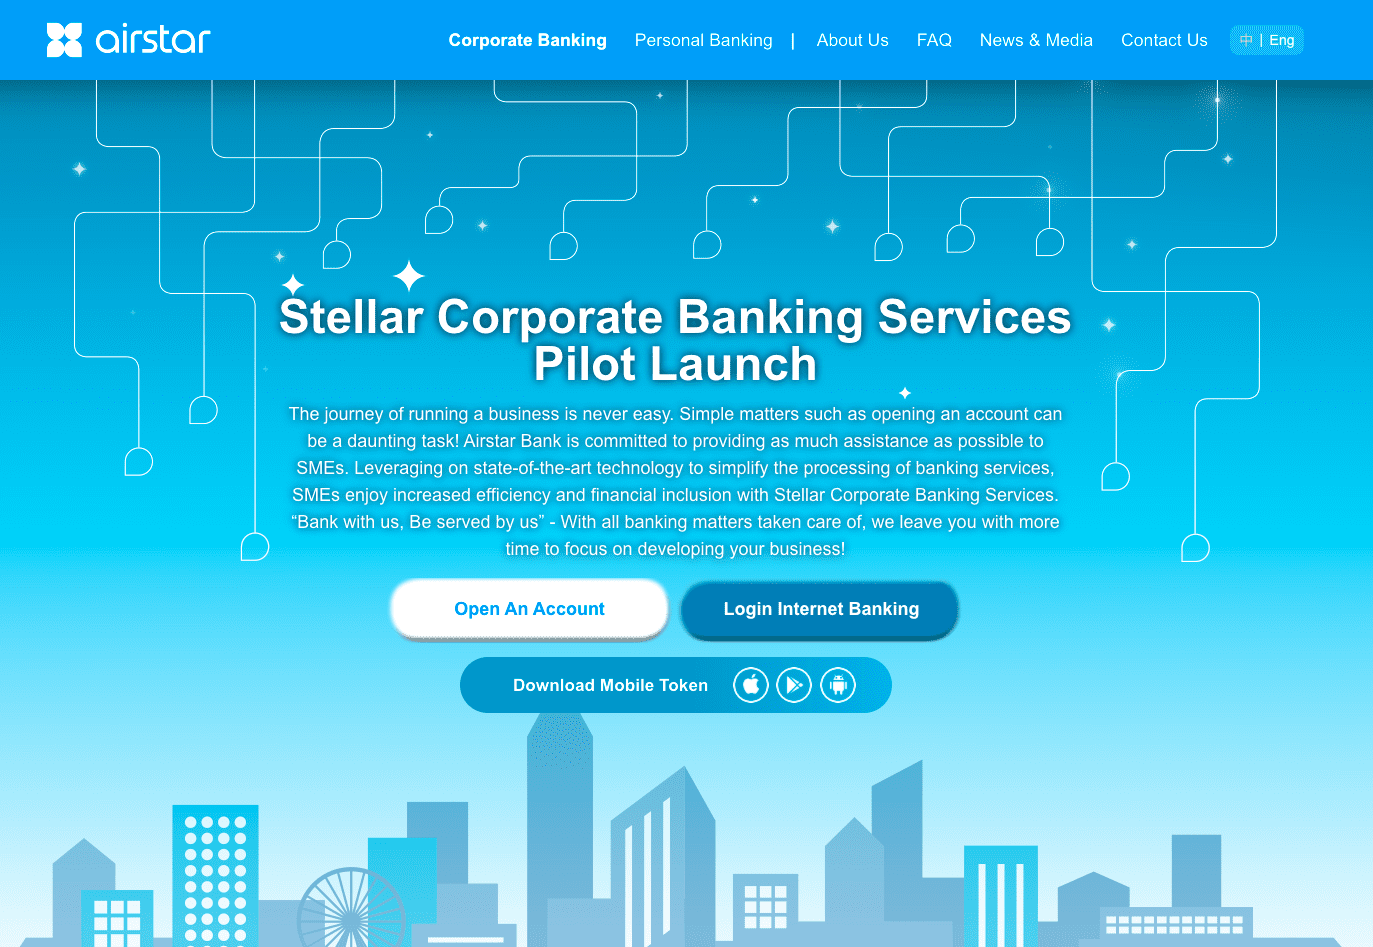 AMTD News | Airstar Bank launched Corporate Banking Service Pilot Trial